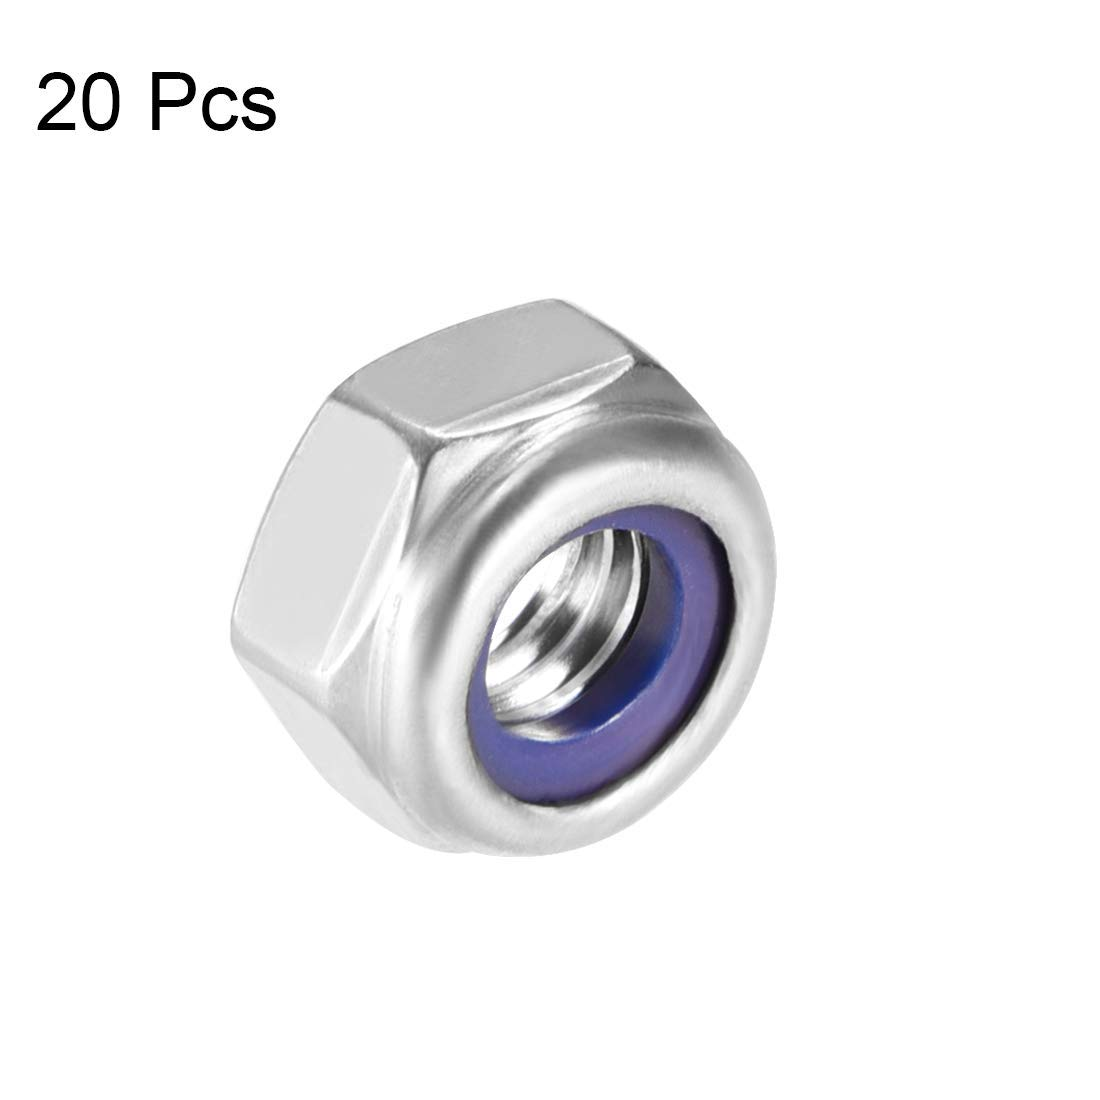 316 Stainless Steel Hexagonal Safety Nuts with M6 x 1 mm Nylon Insert Smooth Finish Pack of 20